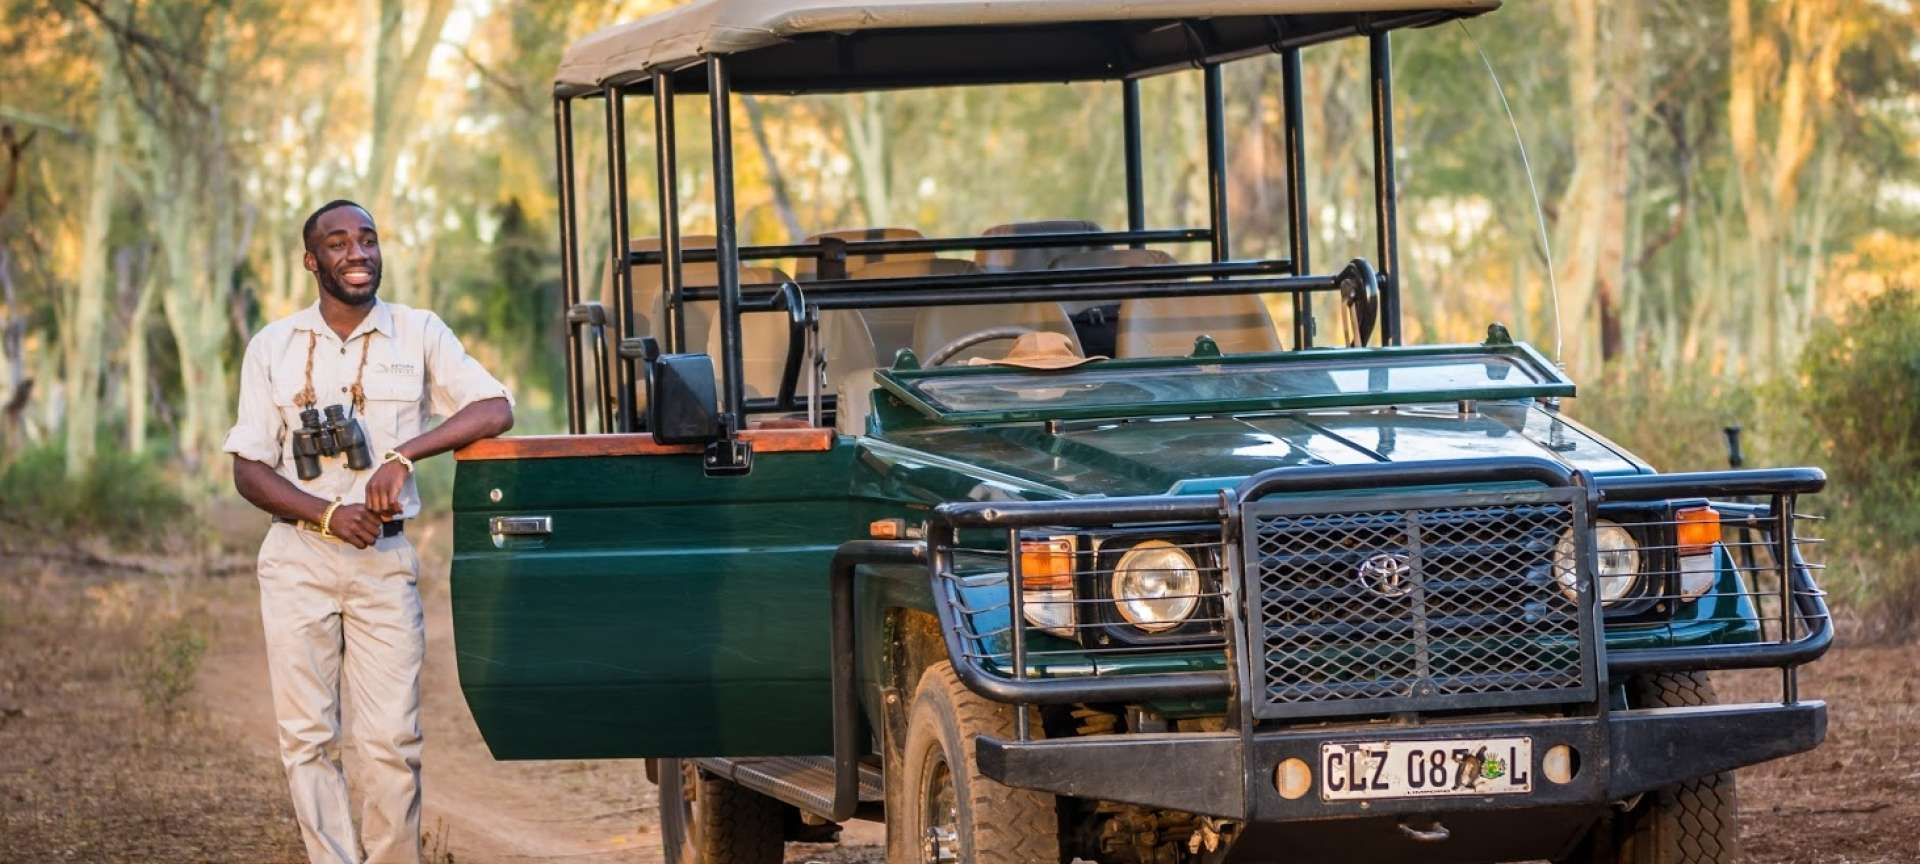 Luxury Safari Tanzania - Africa Wildlife Safaris